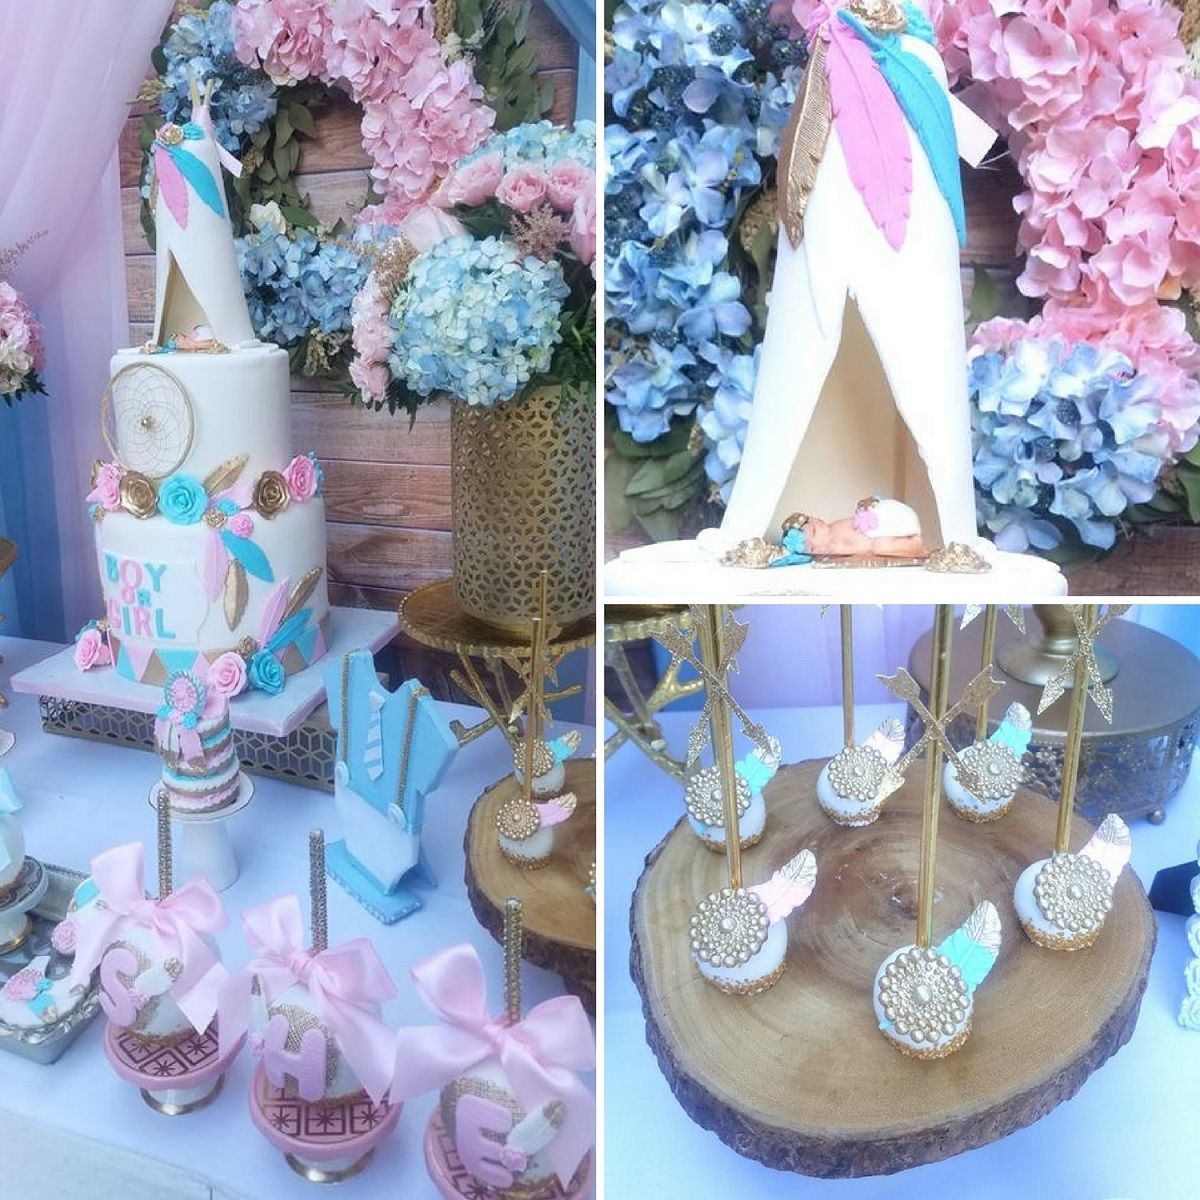 he-or-she-bohemian-gender-reveal-party